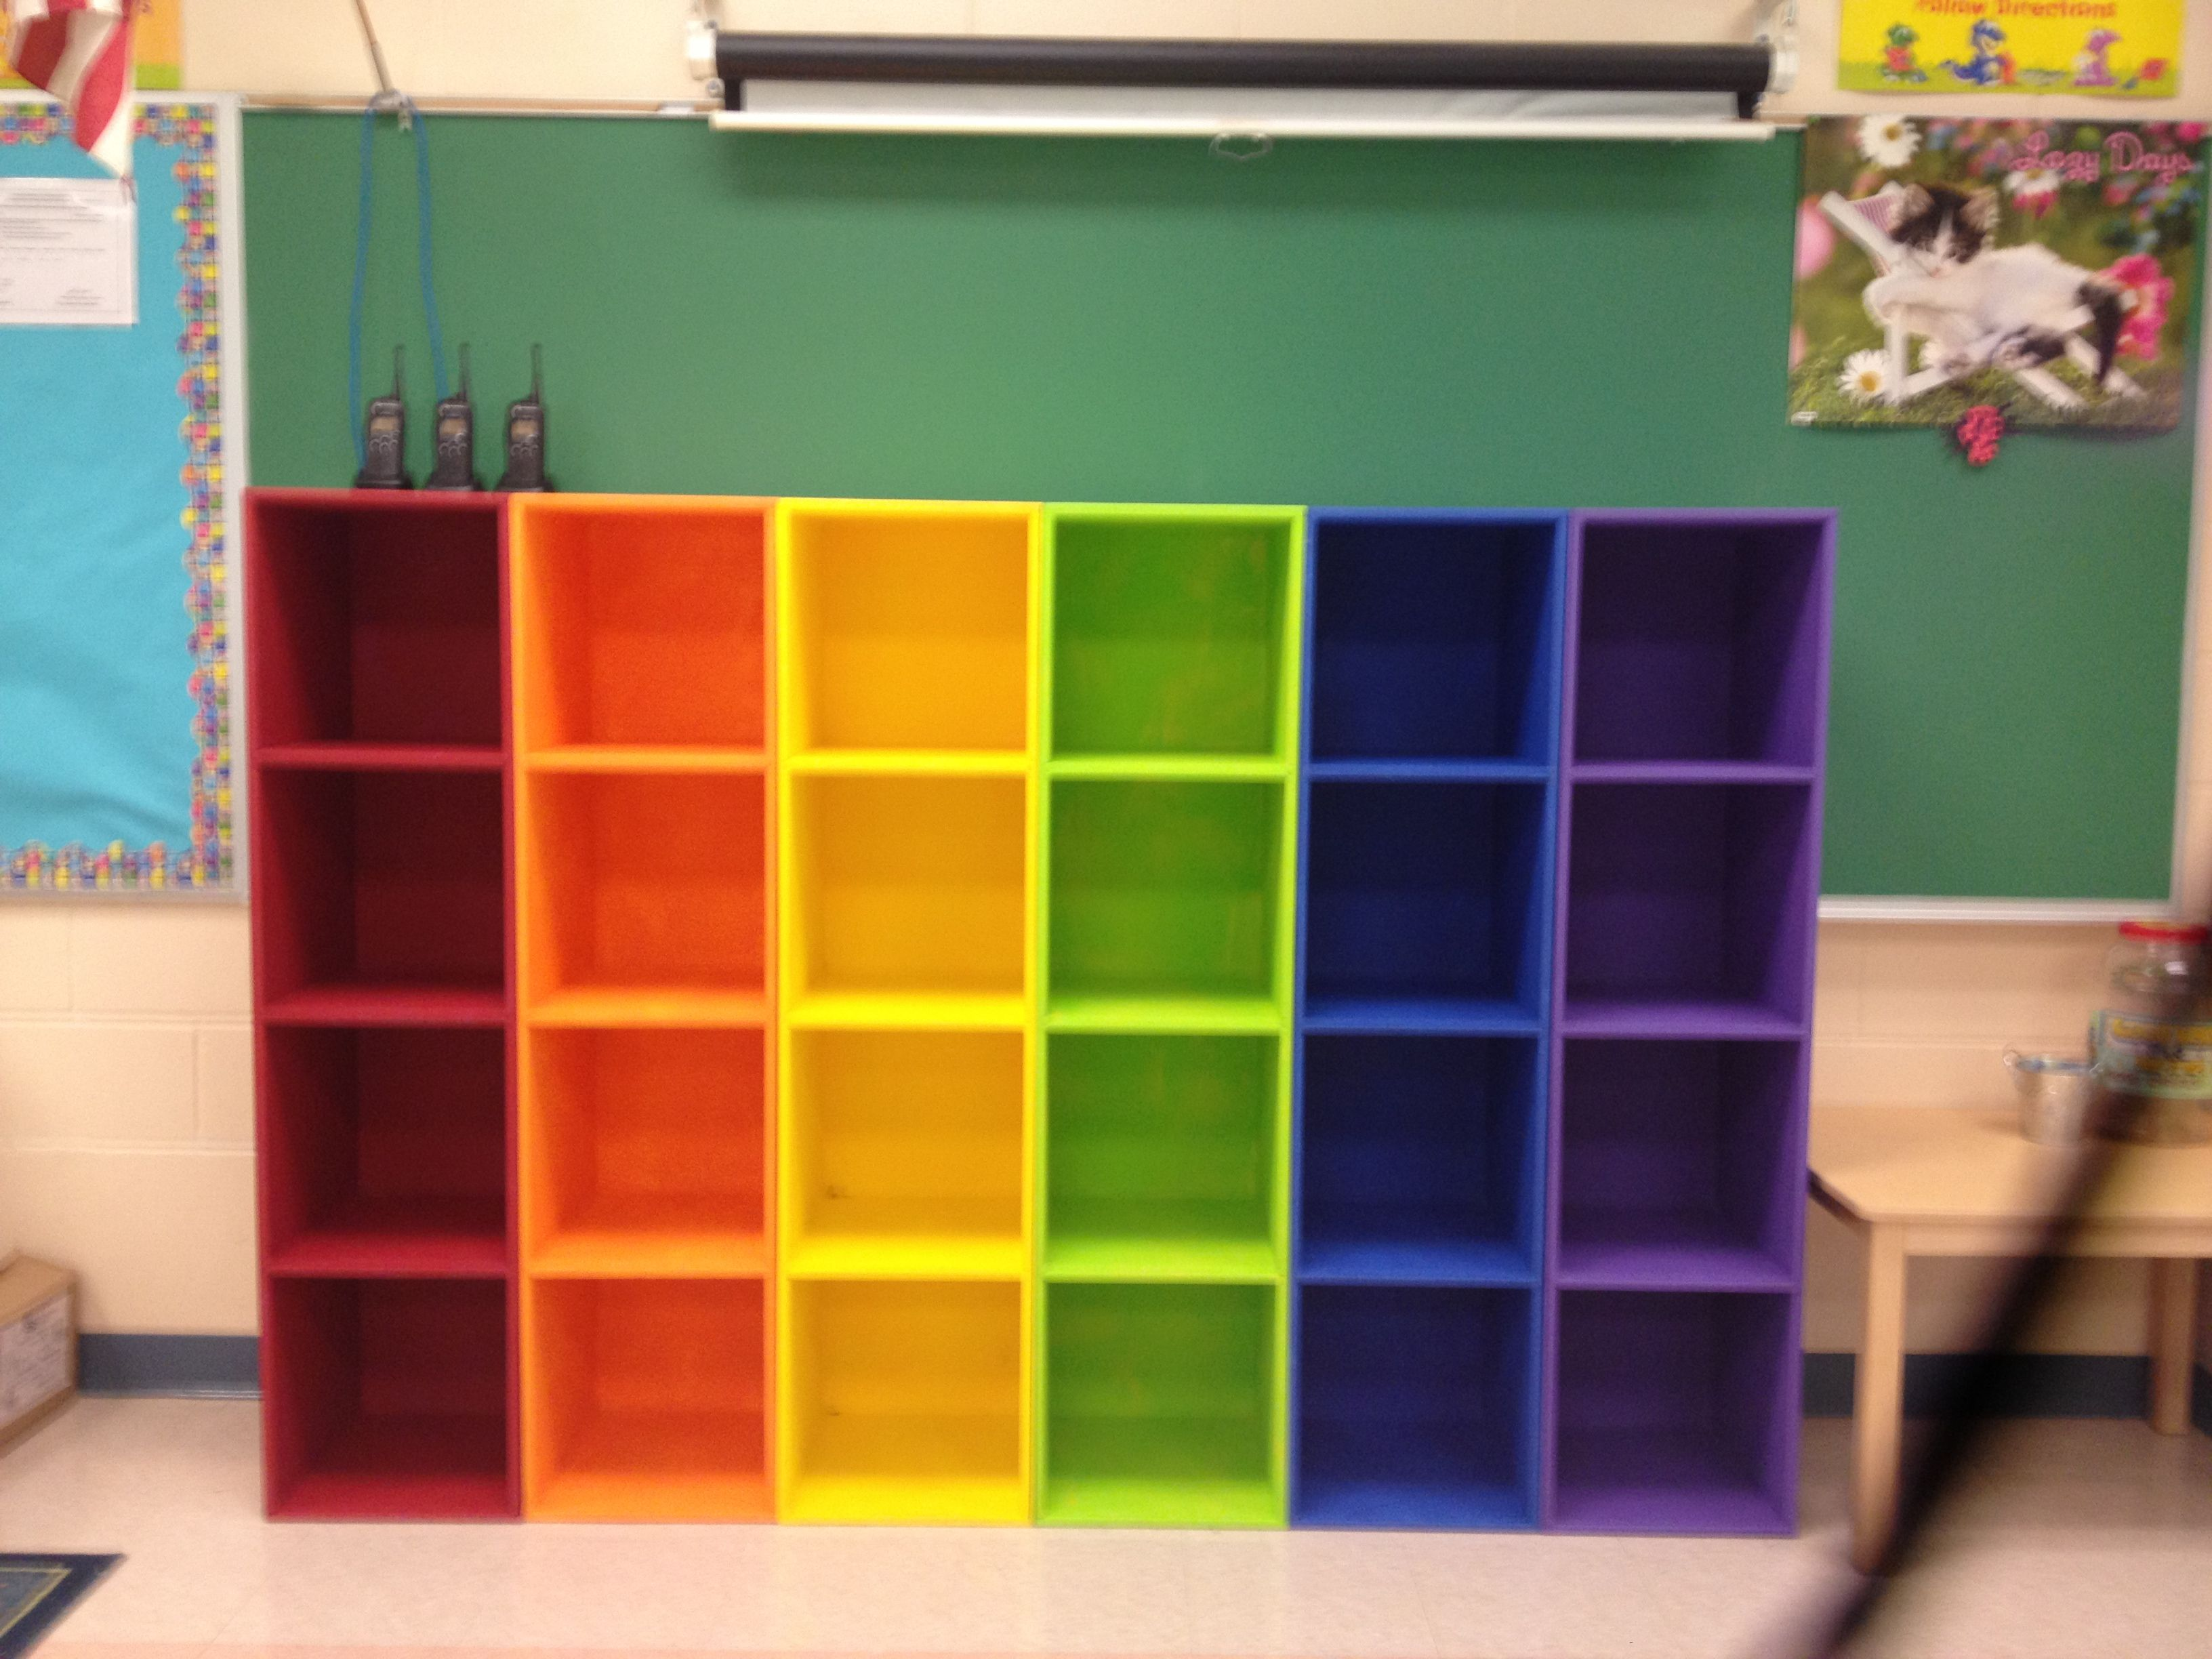 Ikea Shoe Cubby Diy Rainbow Cubbies This Looks Awesome In My Classroom